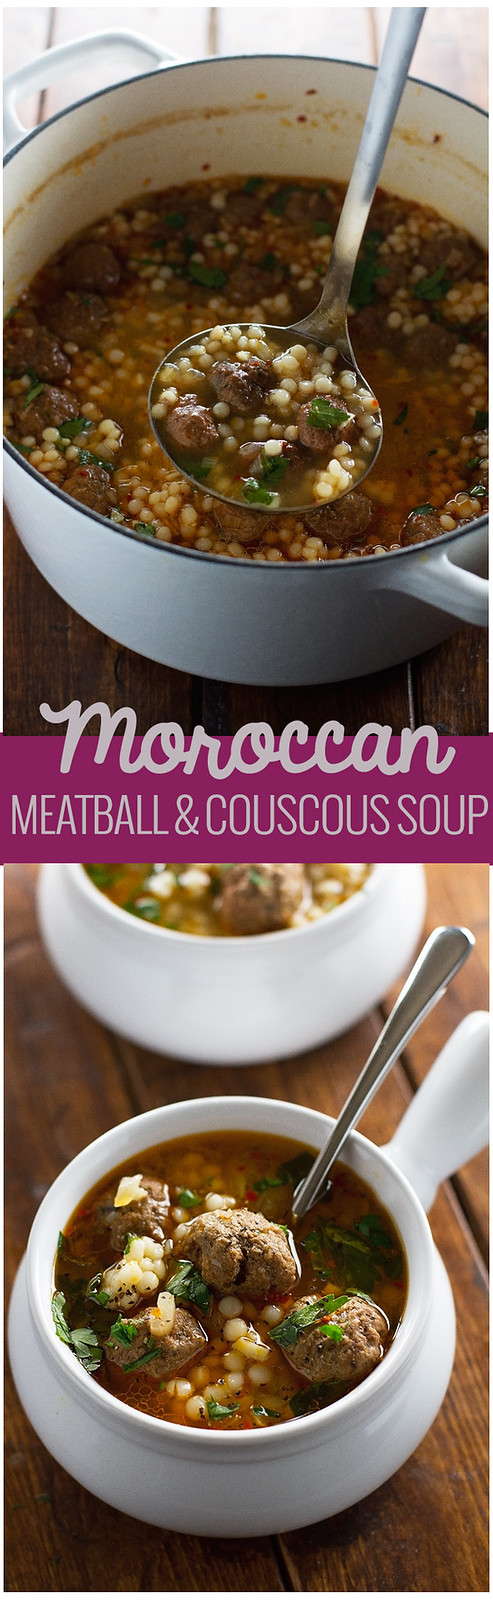 Moroccan Meatball and Couscous Soup - Loaded with tiny meatballs and pearl couscous, this soup is so flavorful! #meatball #meatballsoup #moroccan #couscous   Littlespicejar.com